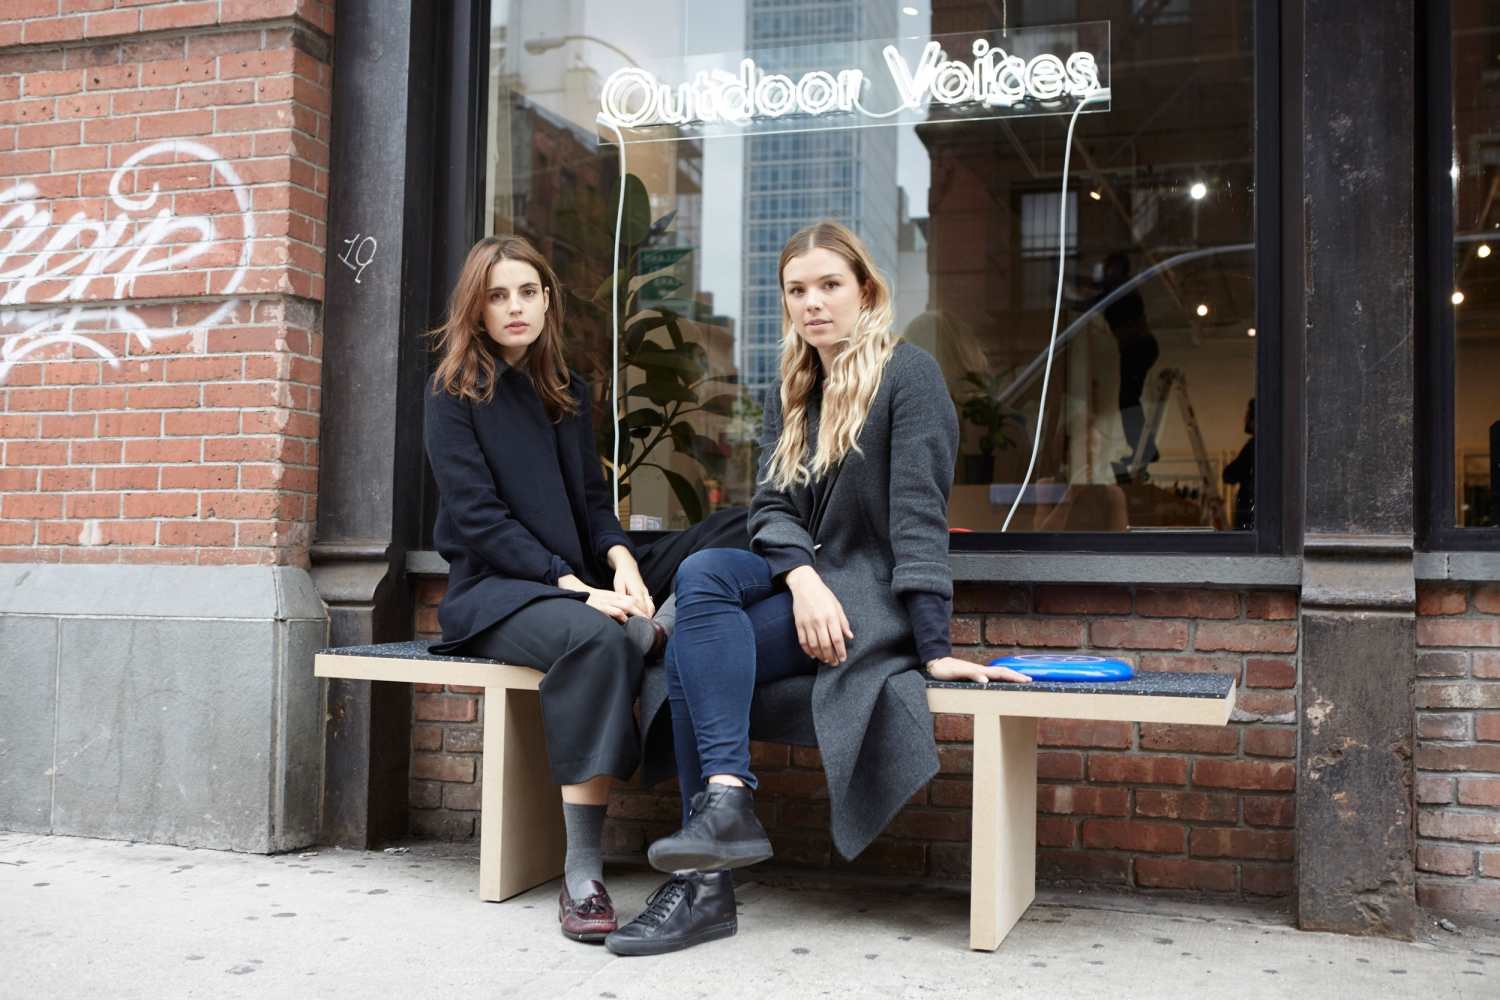 Find out Why A.P.C. Invested in Outdoor Voices